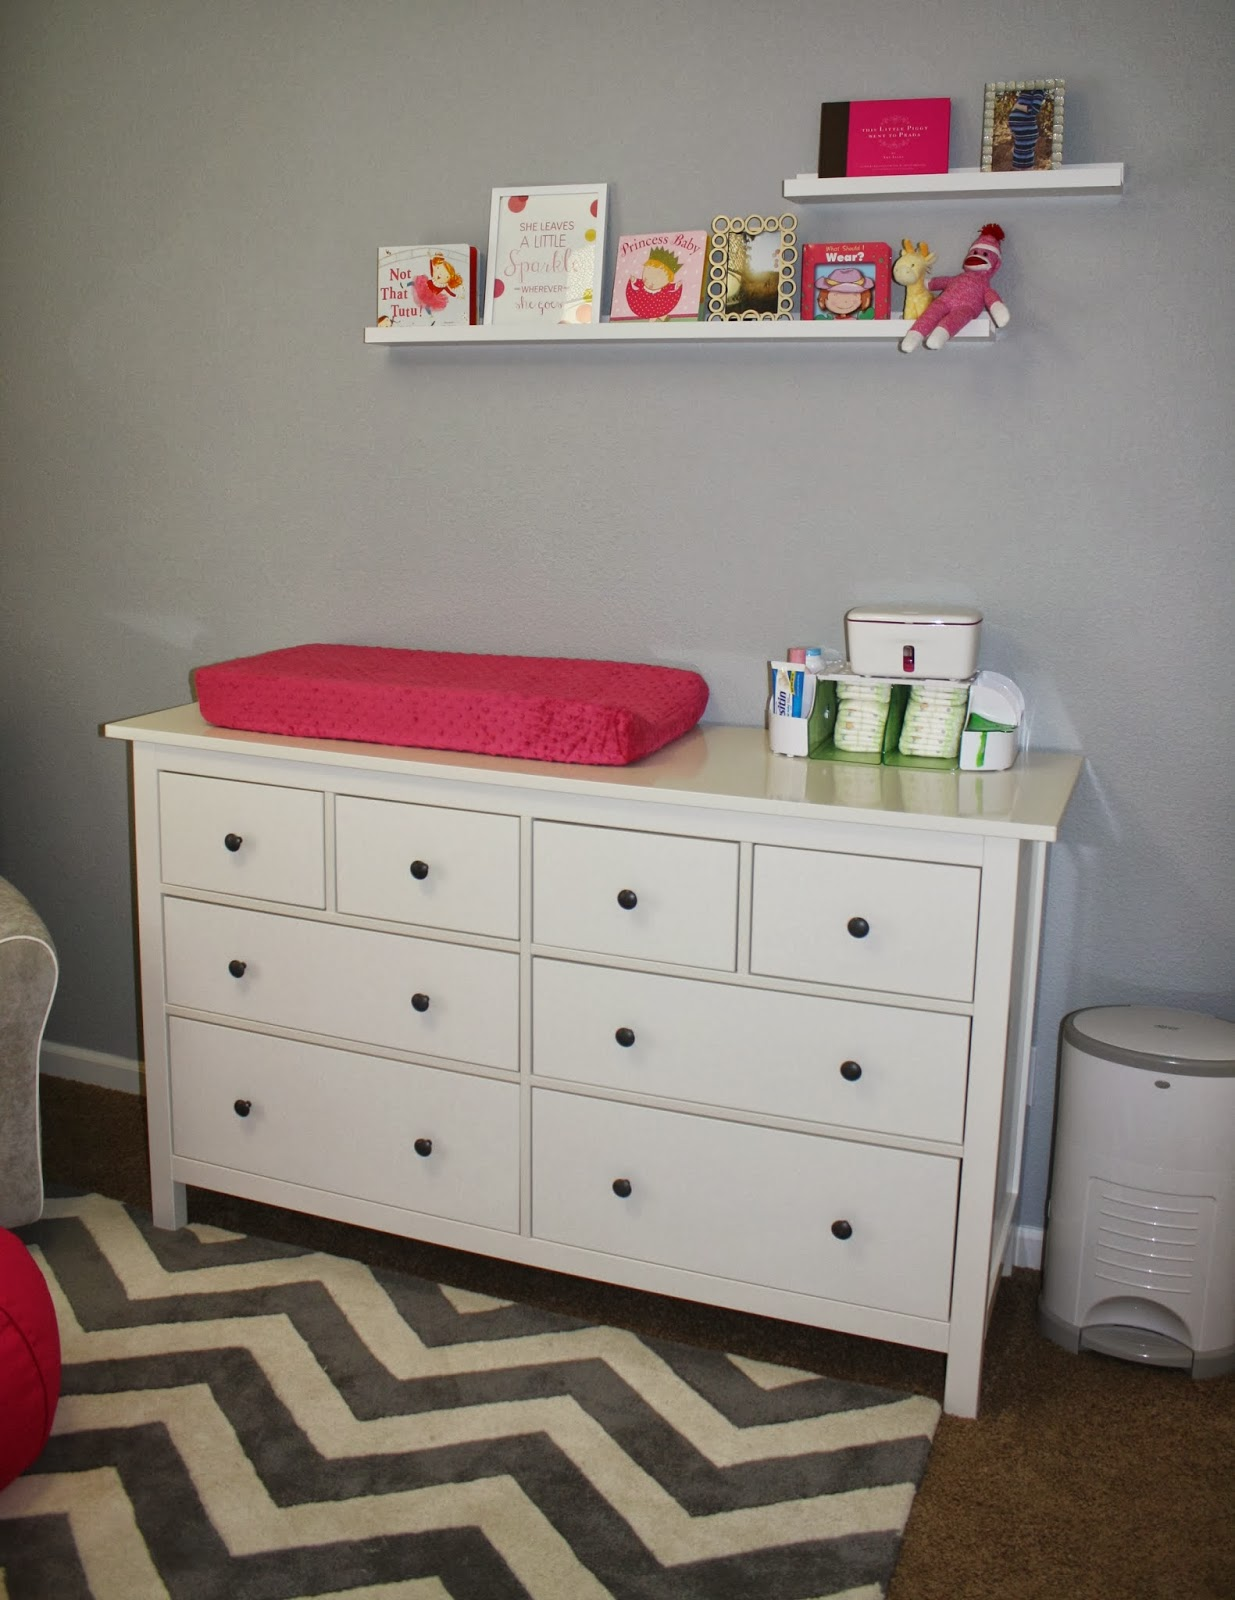 Nursery organization shoes : Nursery drawer organization